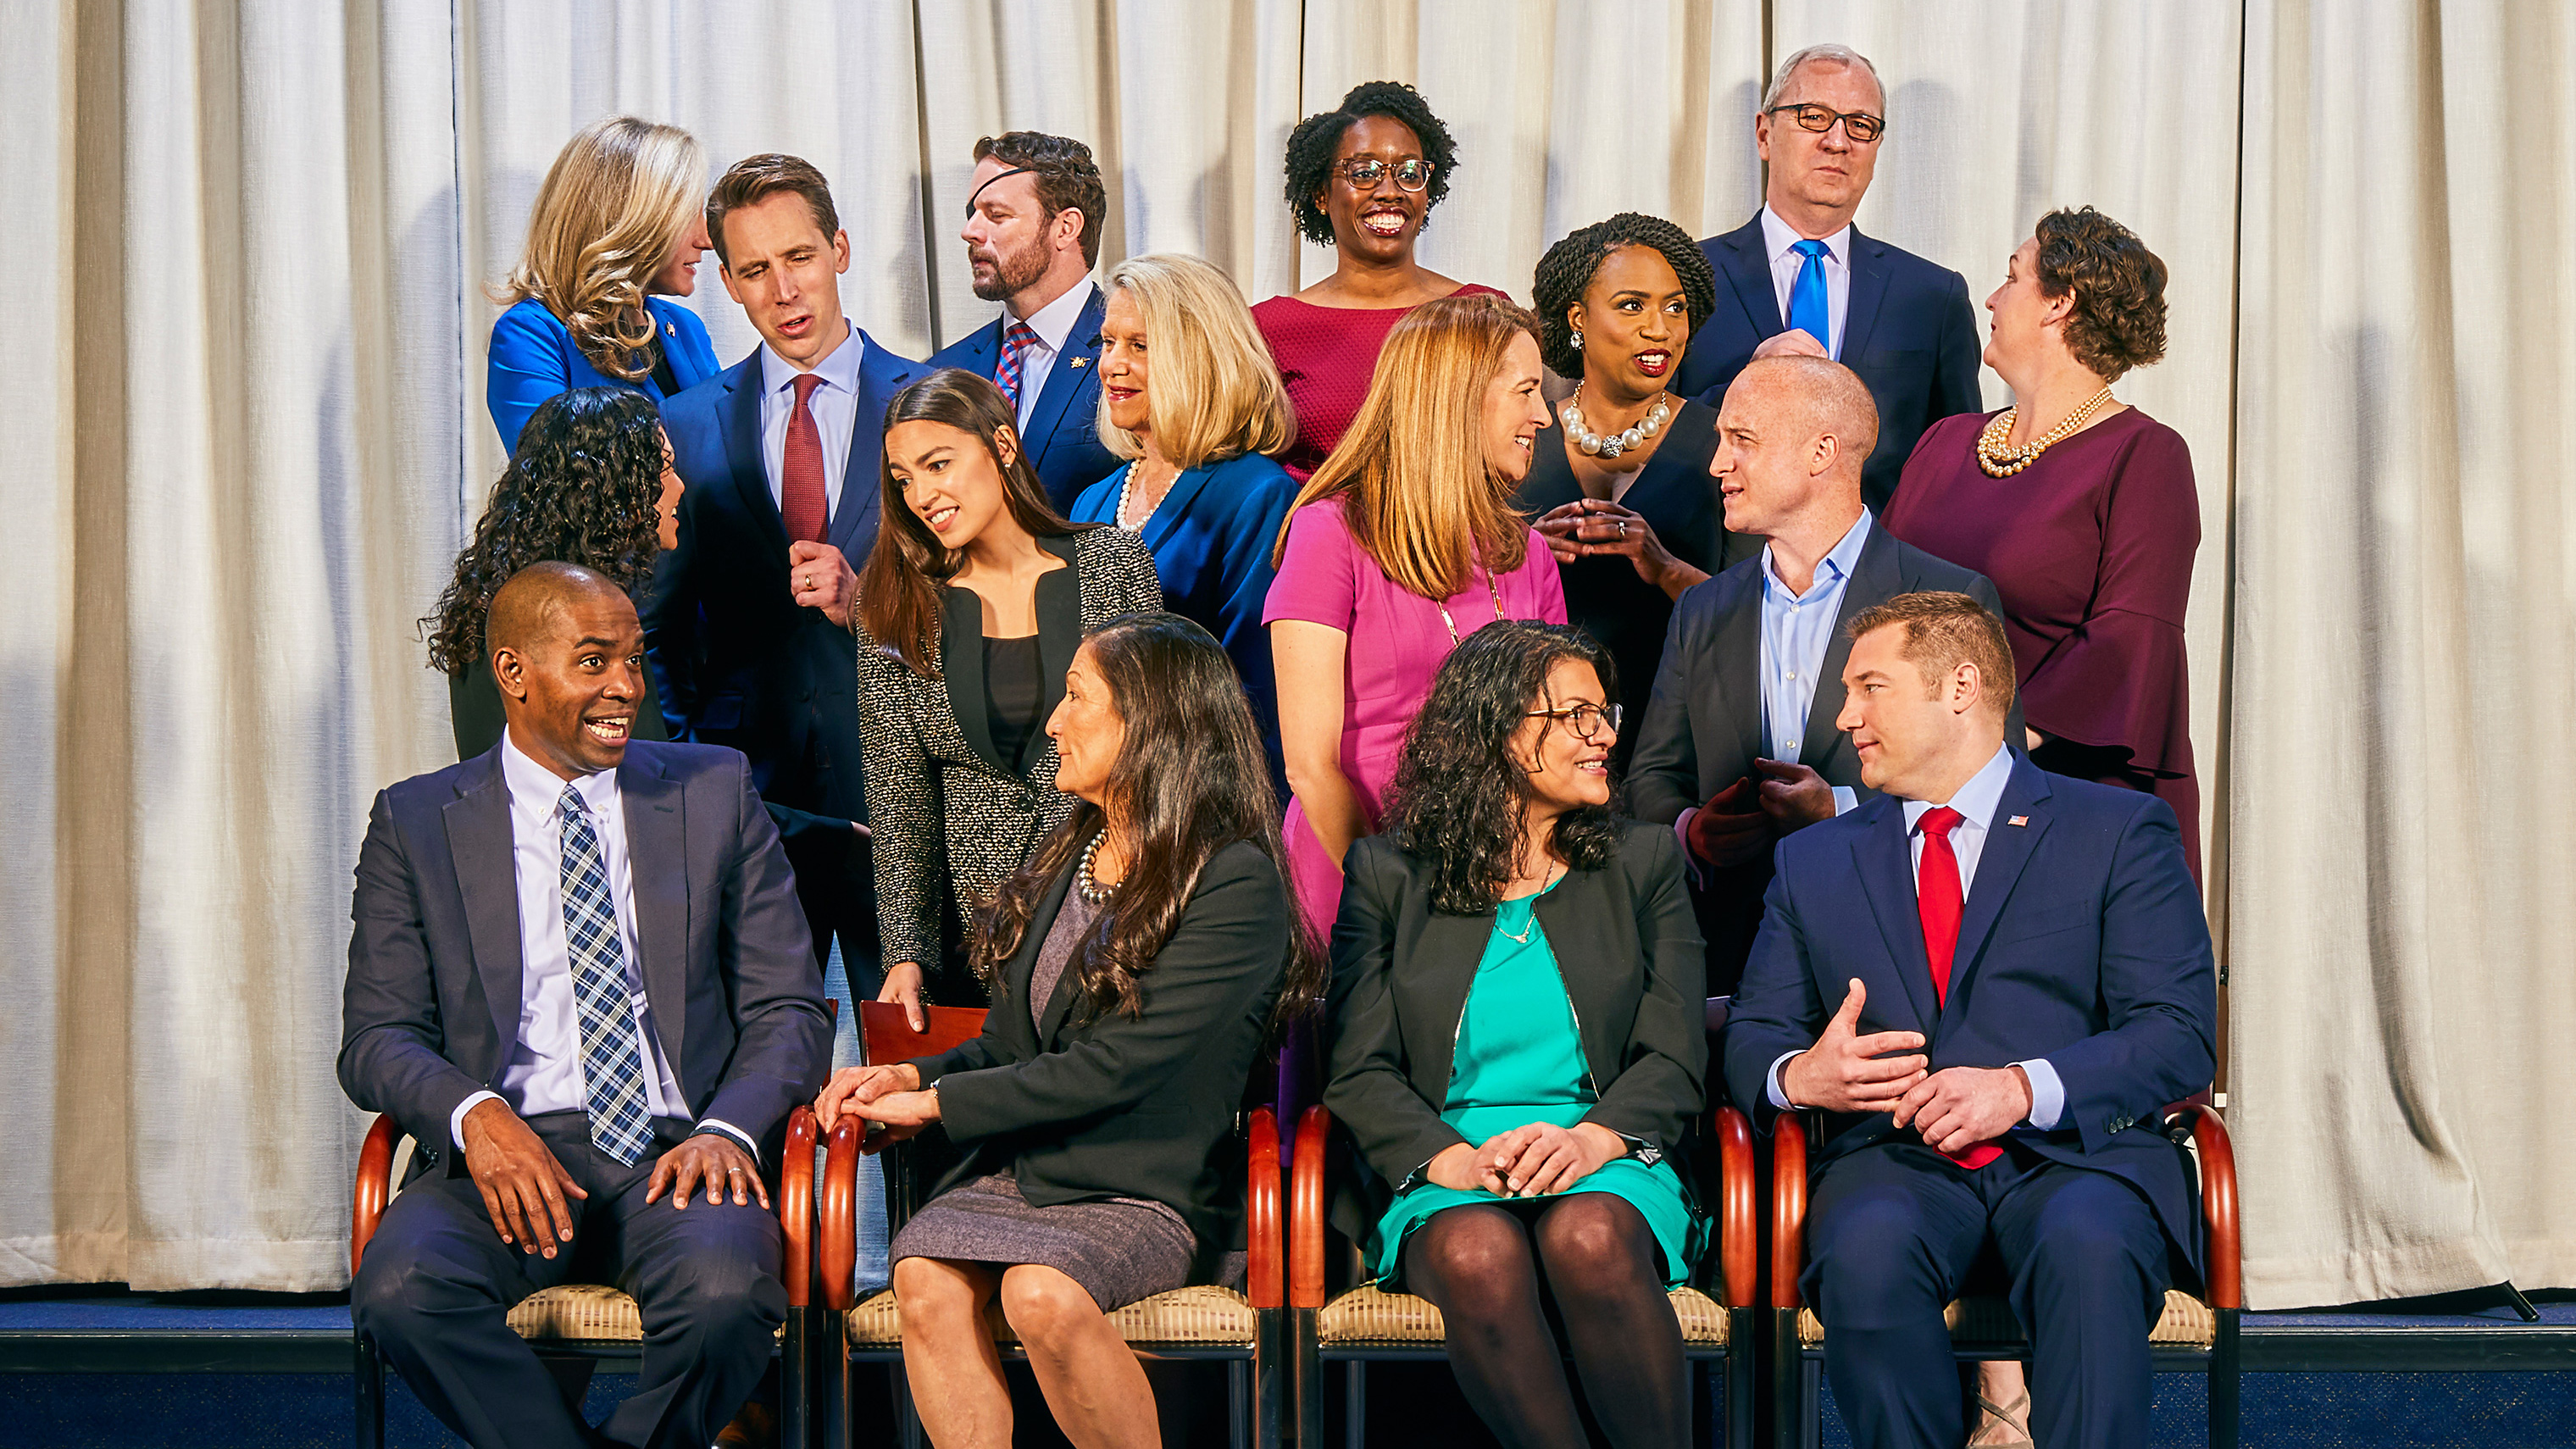 Congressmen and women gather at the United States Capitol in Washington D.C., Jan. 2. Front row, from left to right: Rep. Antonio Delgado (D–NY), Rep. Deb Haaland (D–NM), Rep. Rashida Tlaib (D–MI), Rep. Guy Reschenthaler (R–PA); Second row, from left to right: Rep. Xochitl Torres Small (D–NM), Rep. Alexandria Ocasio-Cortez (D–NY), Rep. Mikie Sherrill (D–NJ), Rep. Max Rose (D–NY), Third row, from left to right: Sen. Josh Hawley (R–MO), Rep. Carol Miller (R–WV), Rep. Ayanna Pressley (D–MA), Rep. Katie Porter (D–CA); Fourth/last row, from left to right: Rep. Abigail Spanberger (D–VA), Rep. Dan Crenshaw (R–TX), Rep. Lauren Underwood (D–IL), Sen. Kevin Cramer (R–ND)